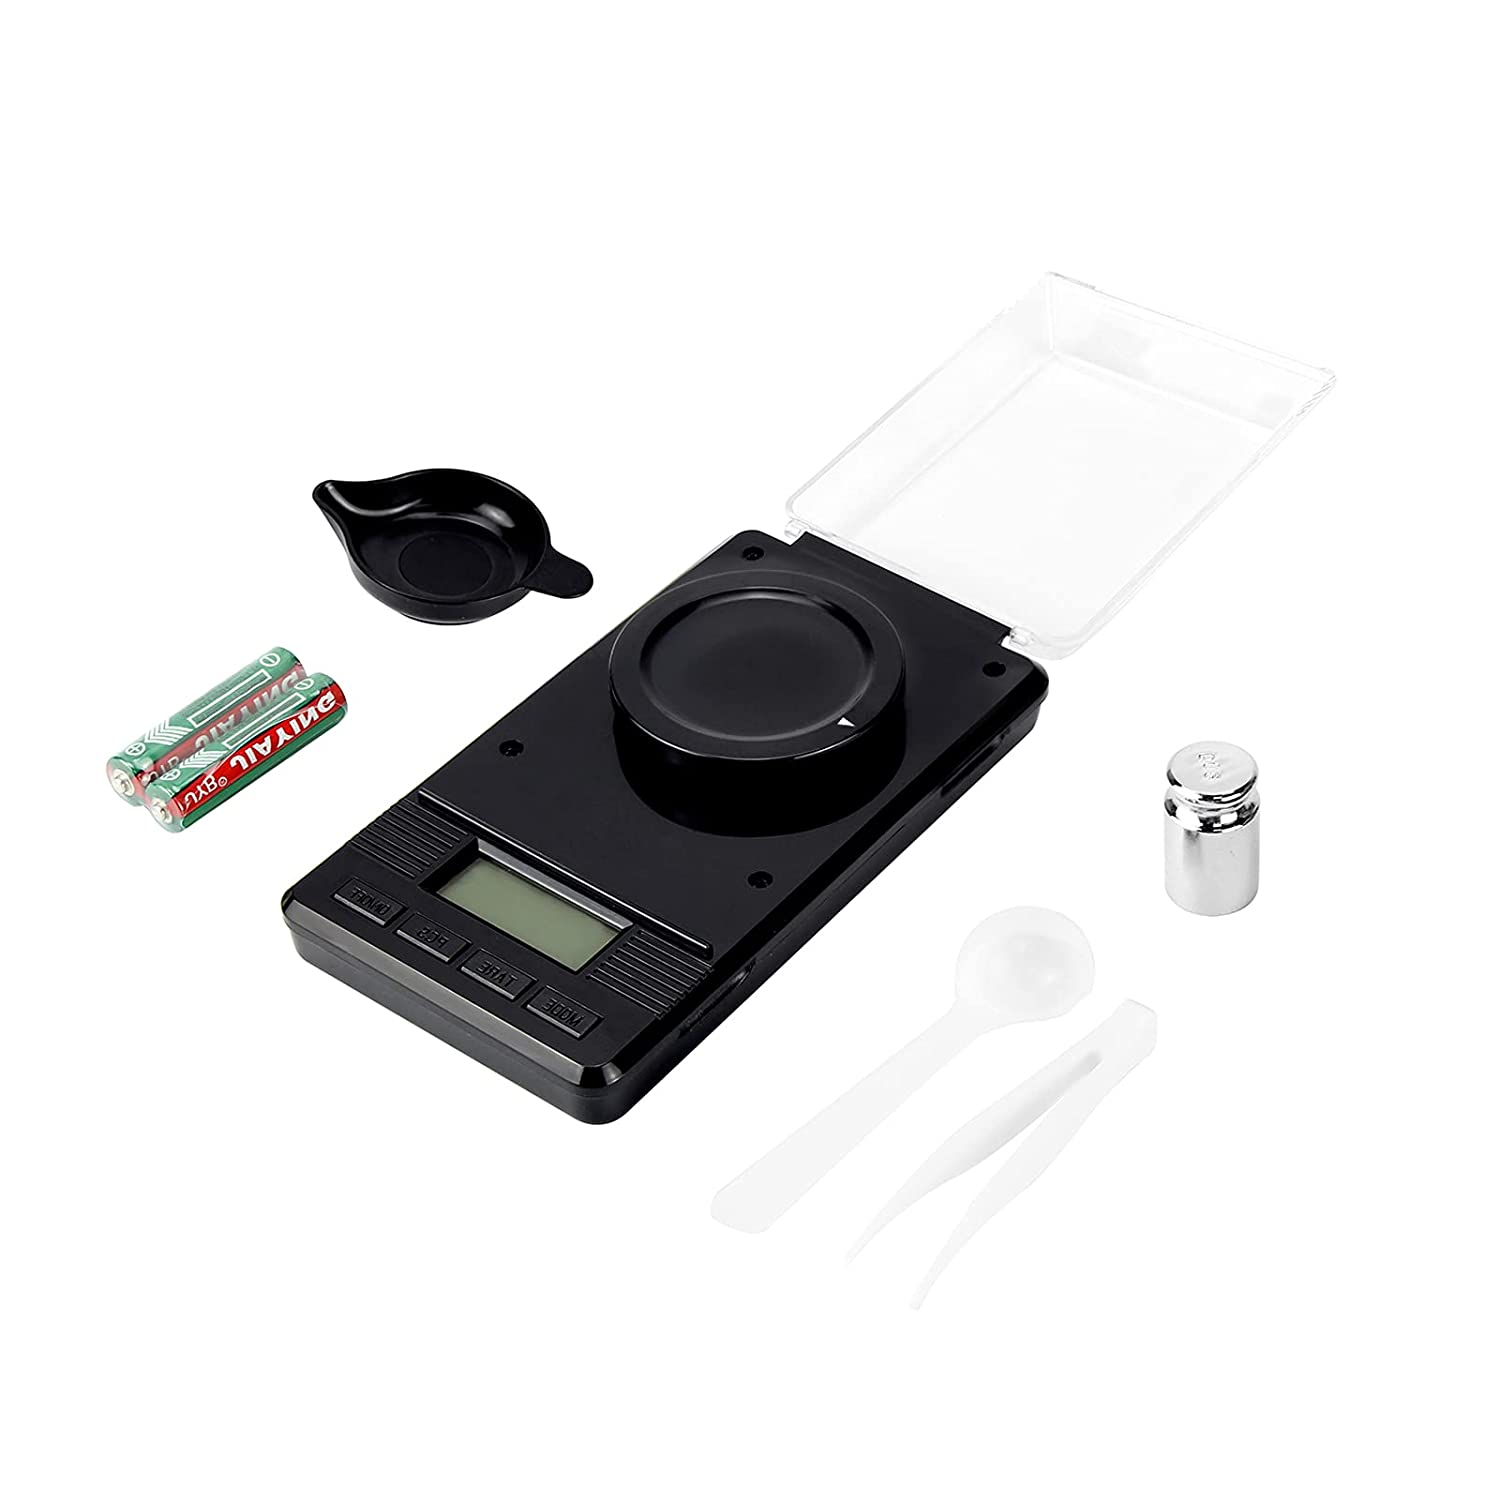 Digital Milligram Pocket Scale, Electronic Reloading, Jewelry and Gems Weigh Scales 50g x 0.001g with Calibration Weight Weighing Pan Powder Scoop Tweezers LCD Display for Kitchen Food